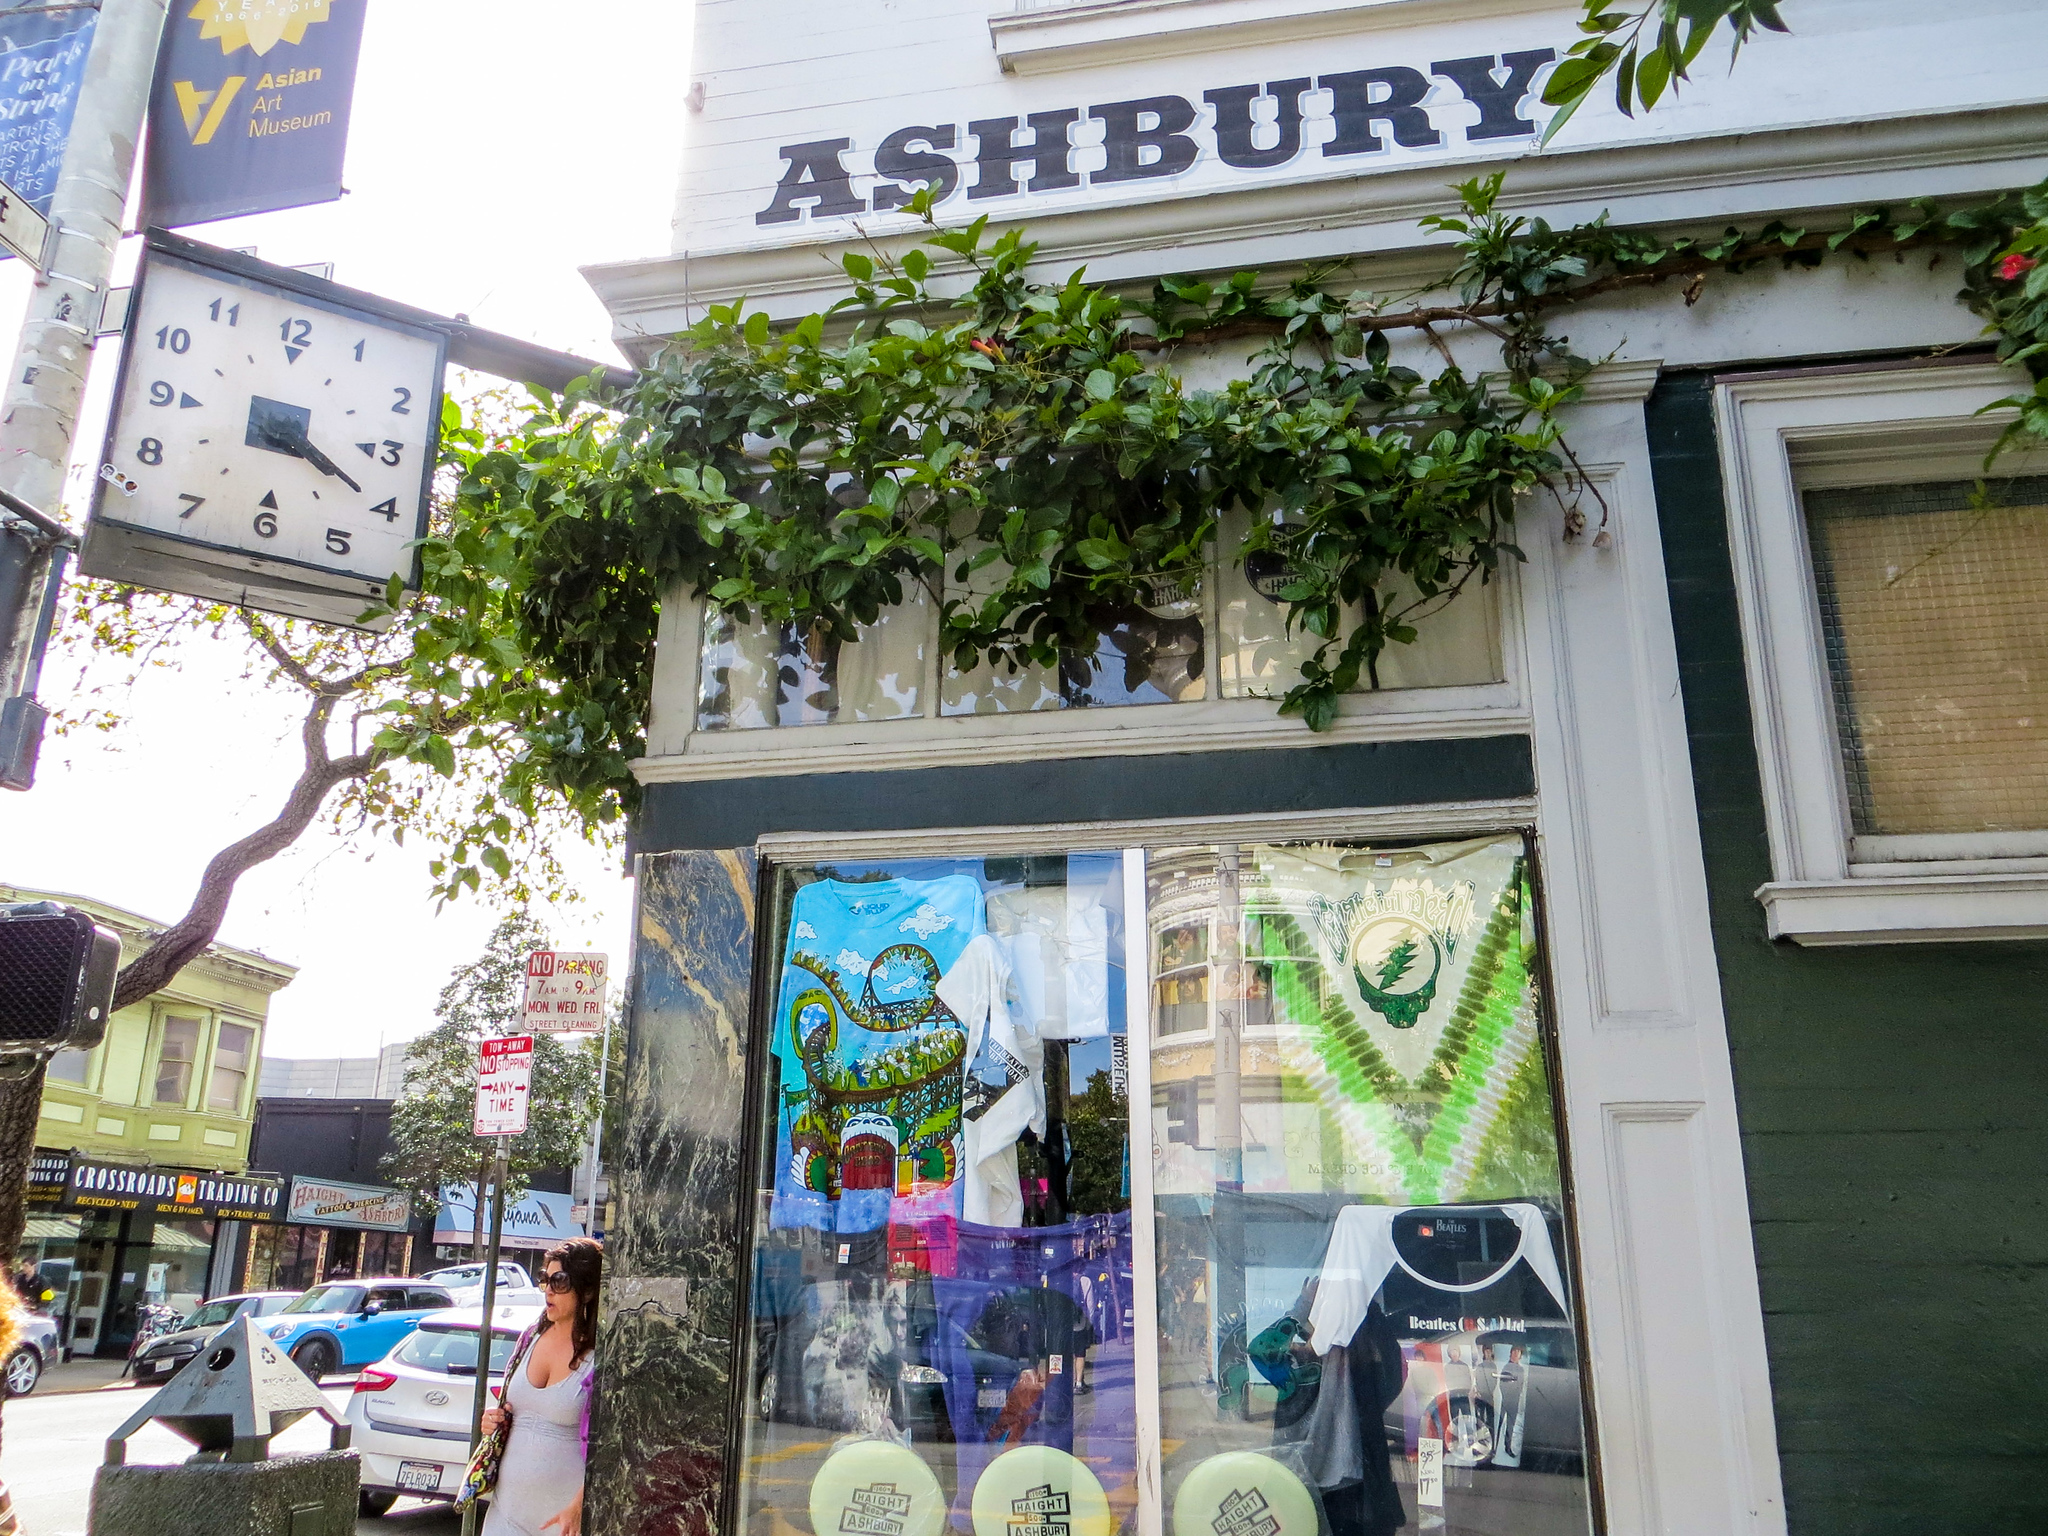 san francisco 2 days: go to ashbury for shopping and eating dinner